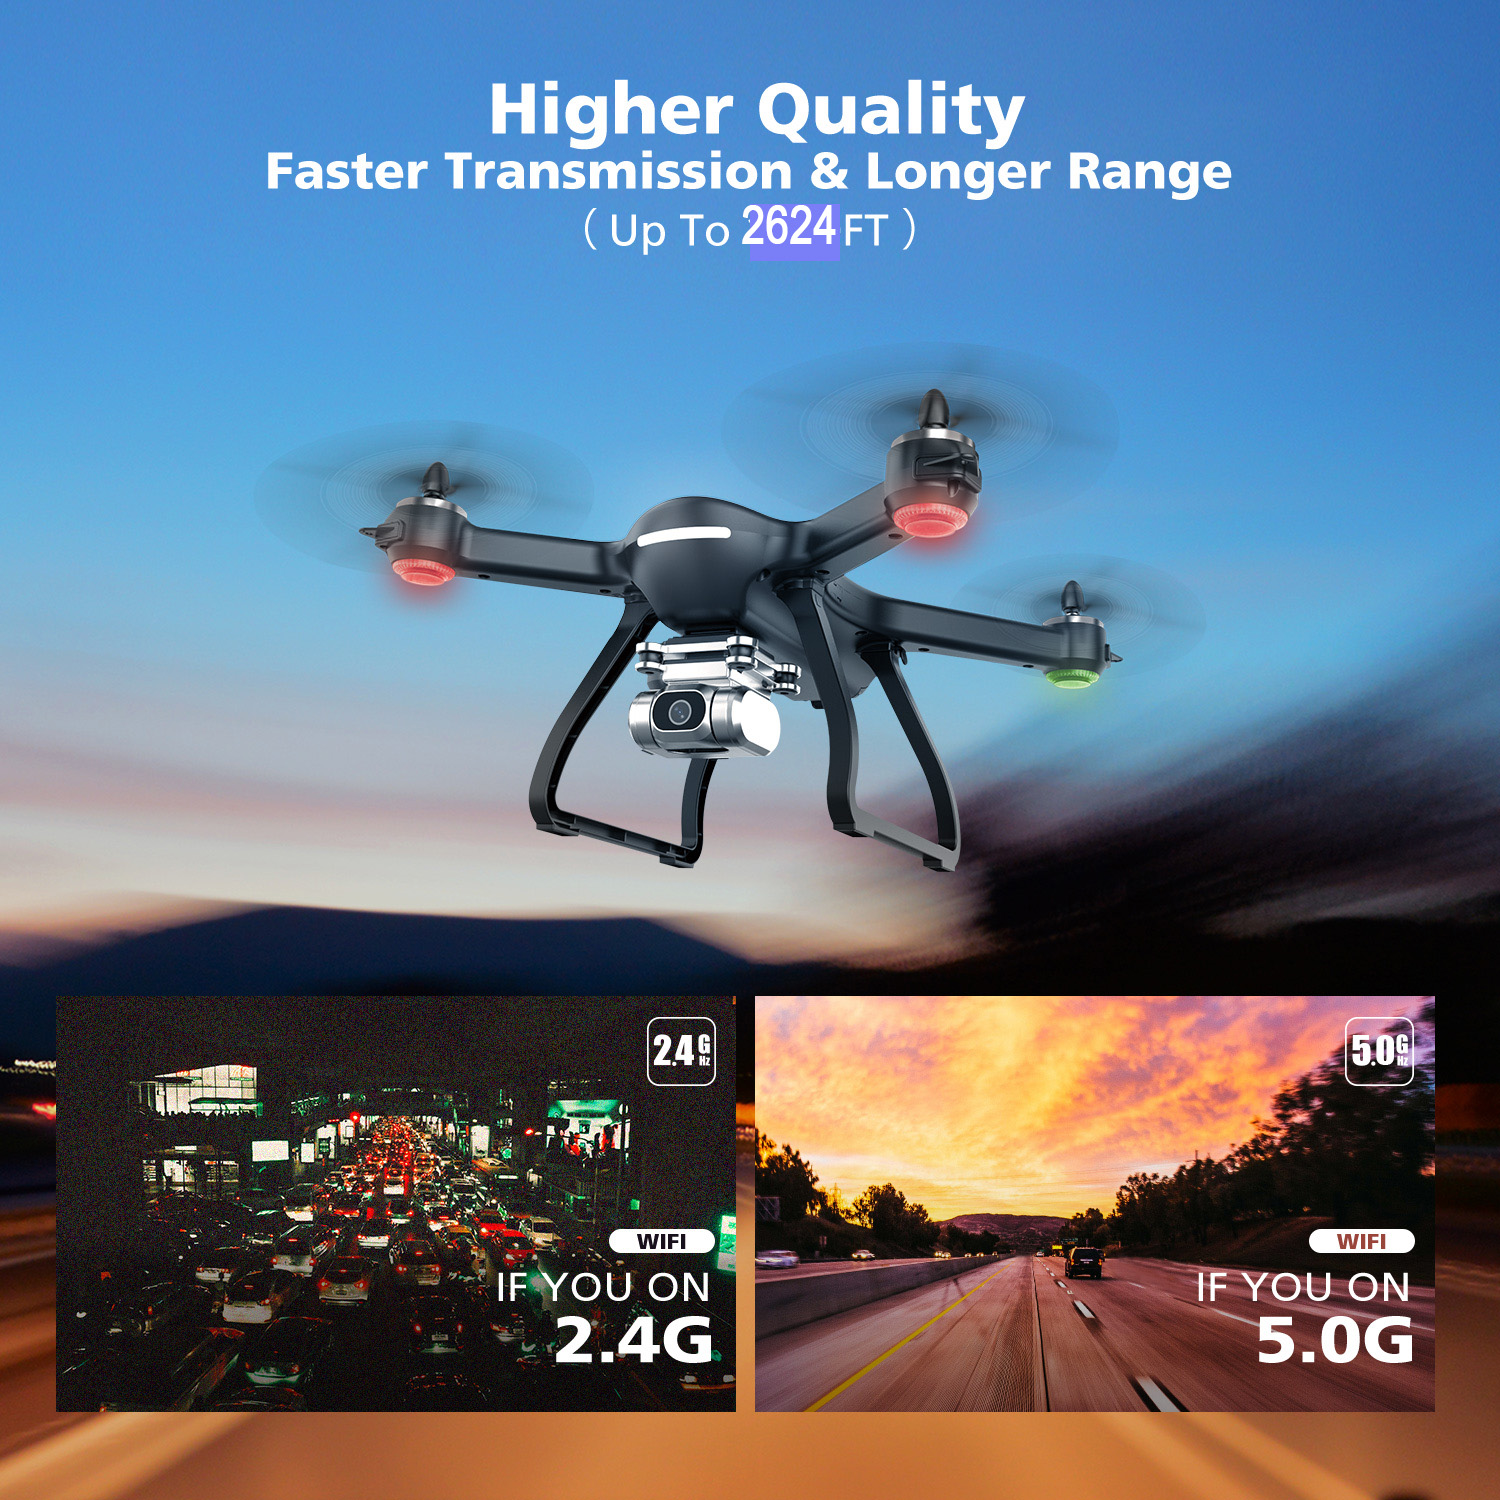 Professional Drone-2K FHD Camera-WI-Fi FPV Live Video-GPS-5GHz RC Quadcopter-7